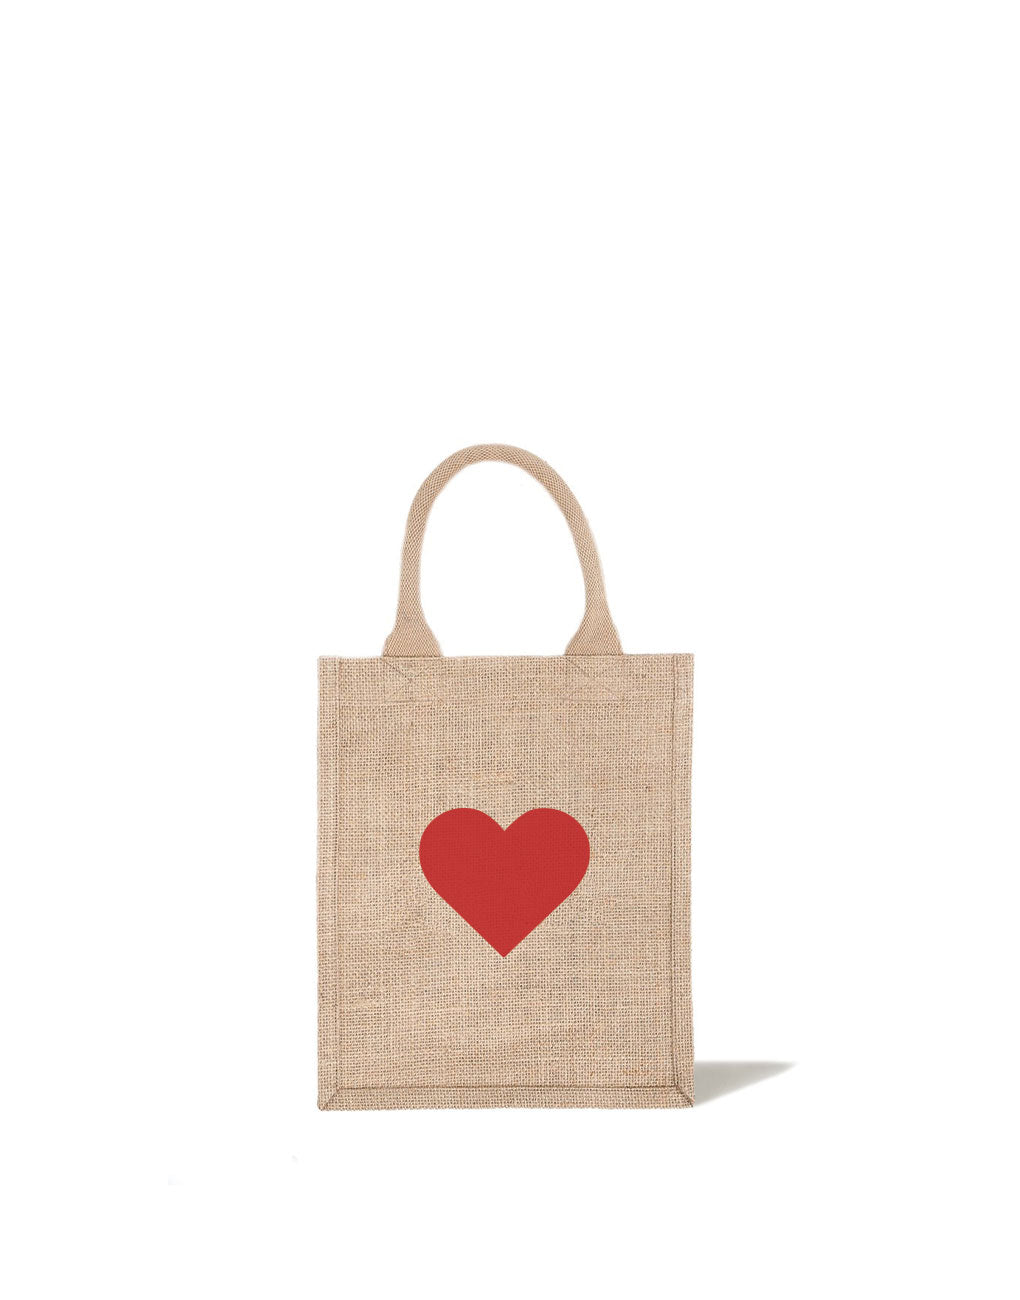 Red Heart Medium Gift Tote Bag | The Little Market